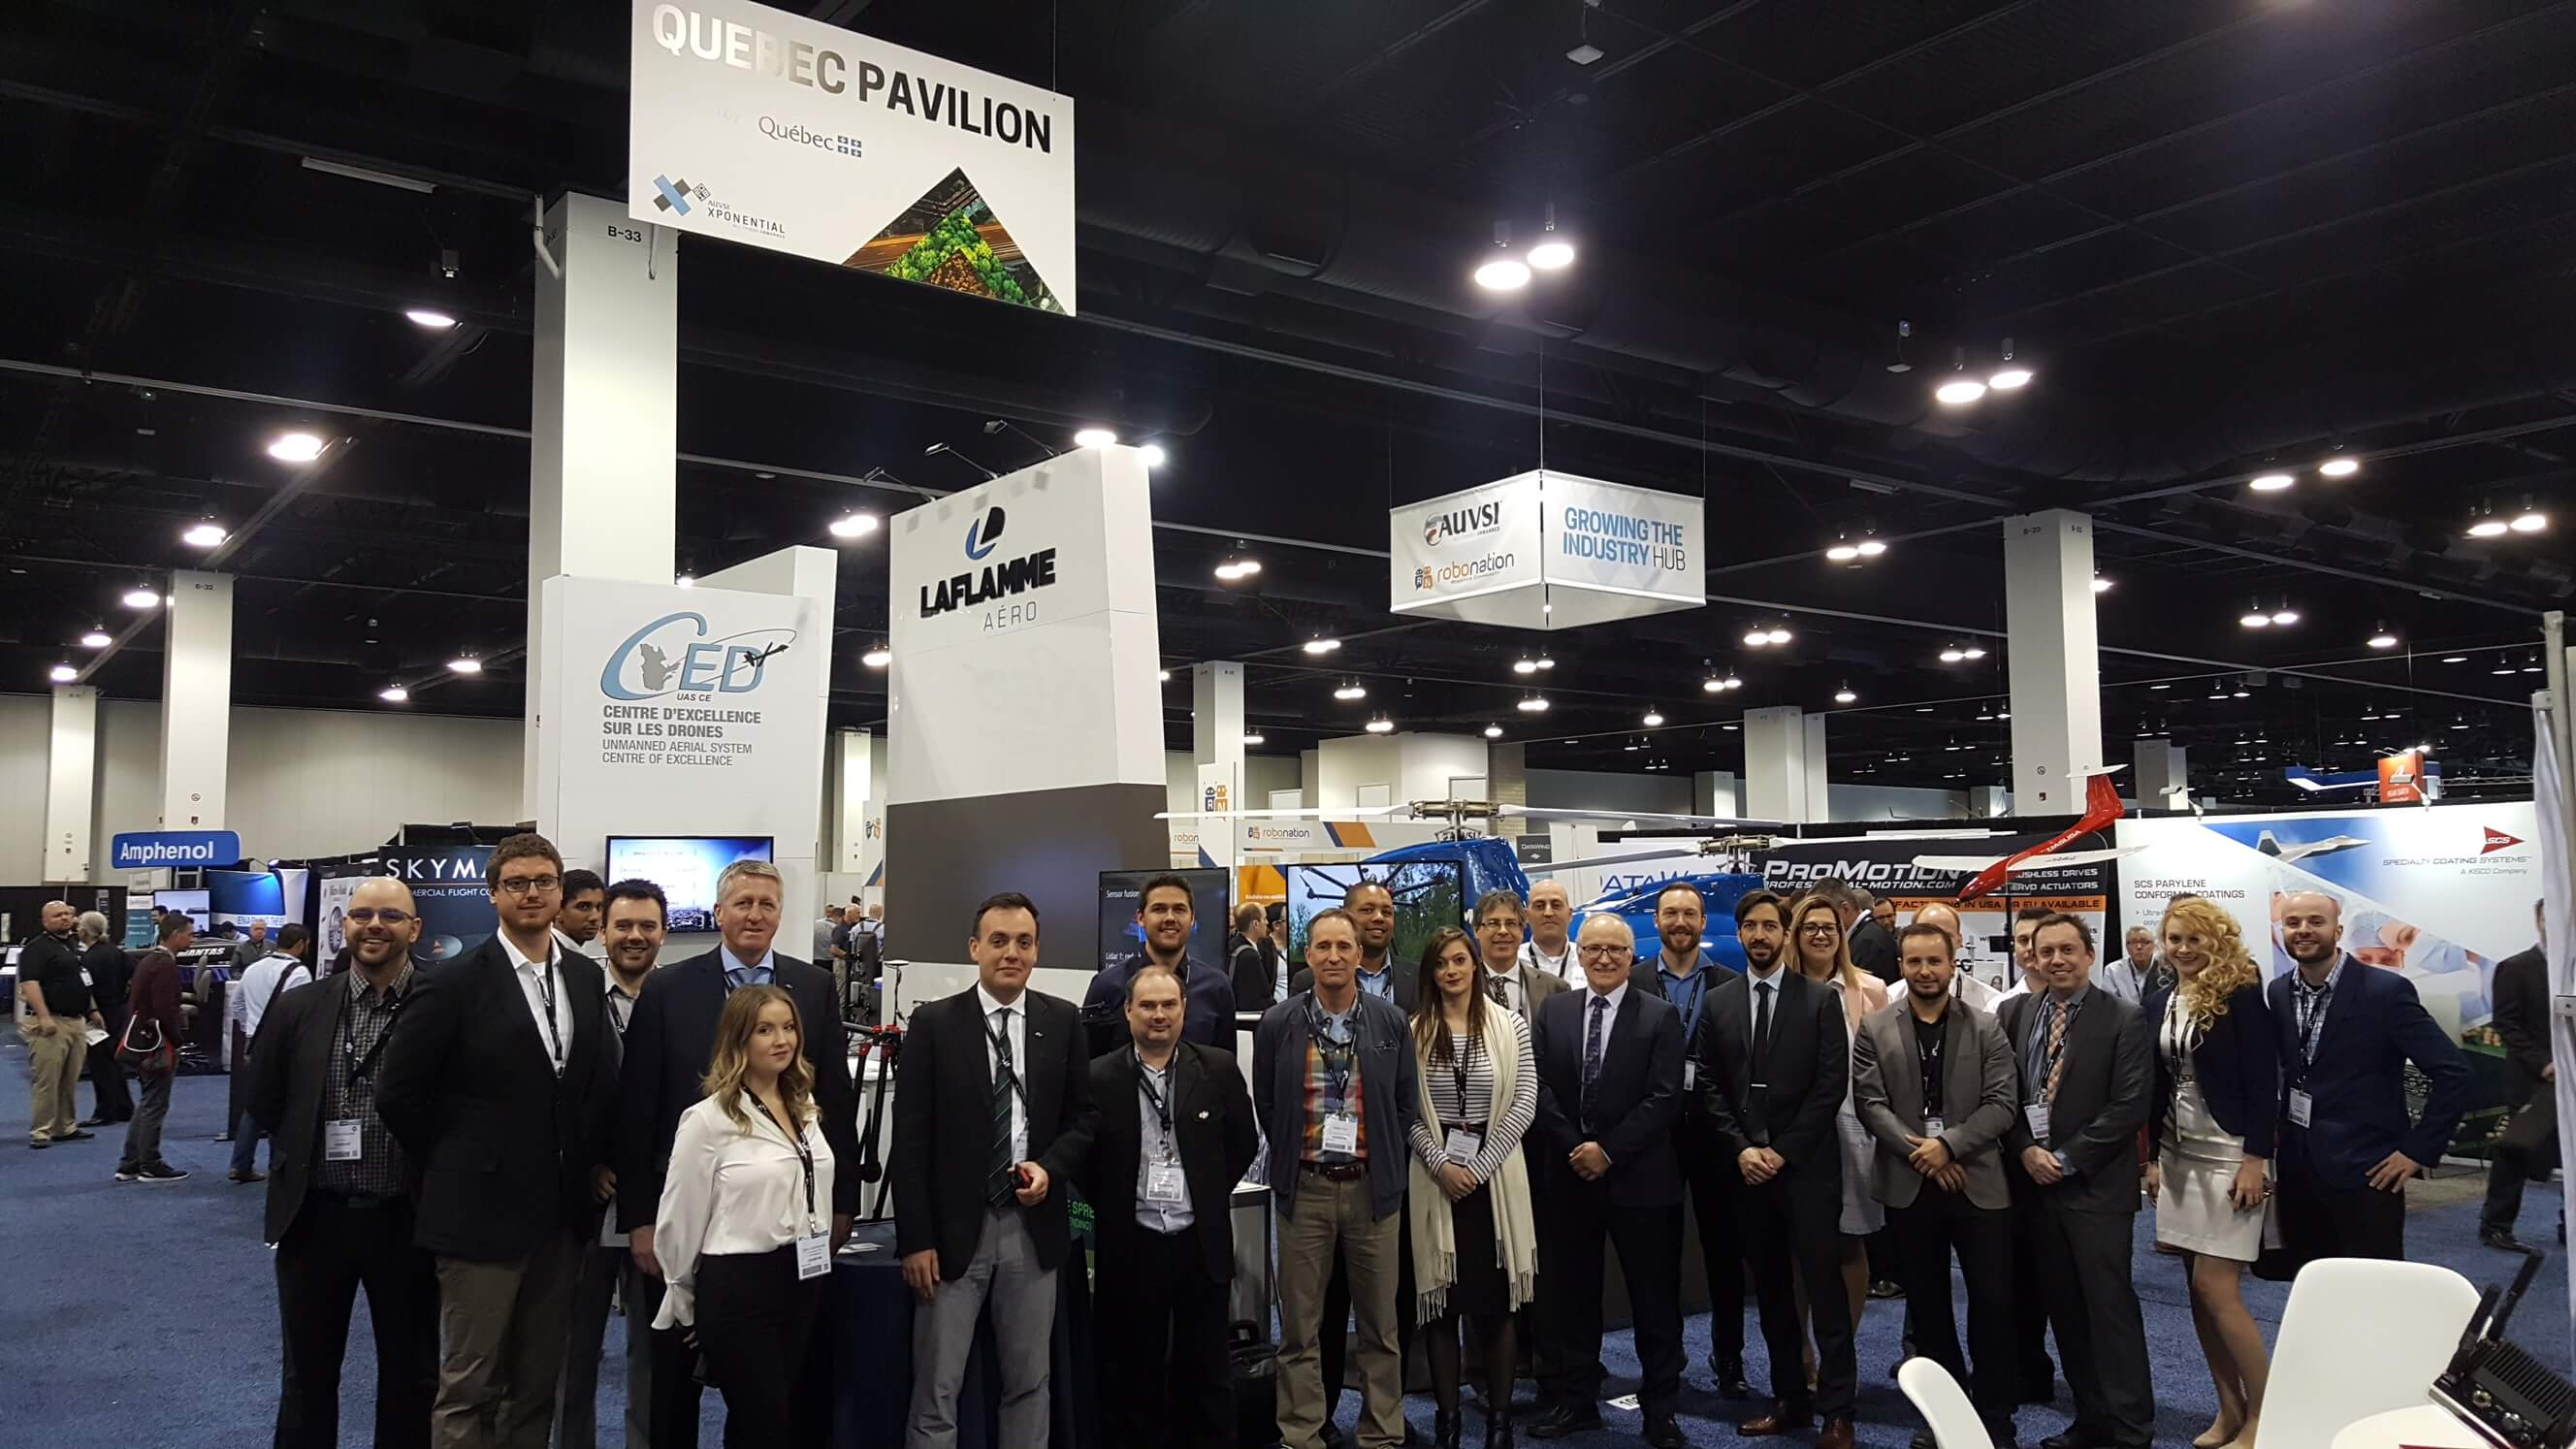 Quebec Delegation to AUVSI XPONENTIAL 2018